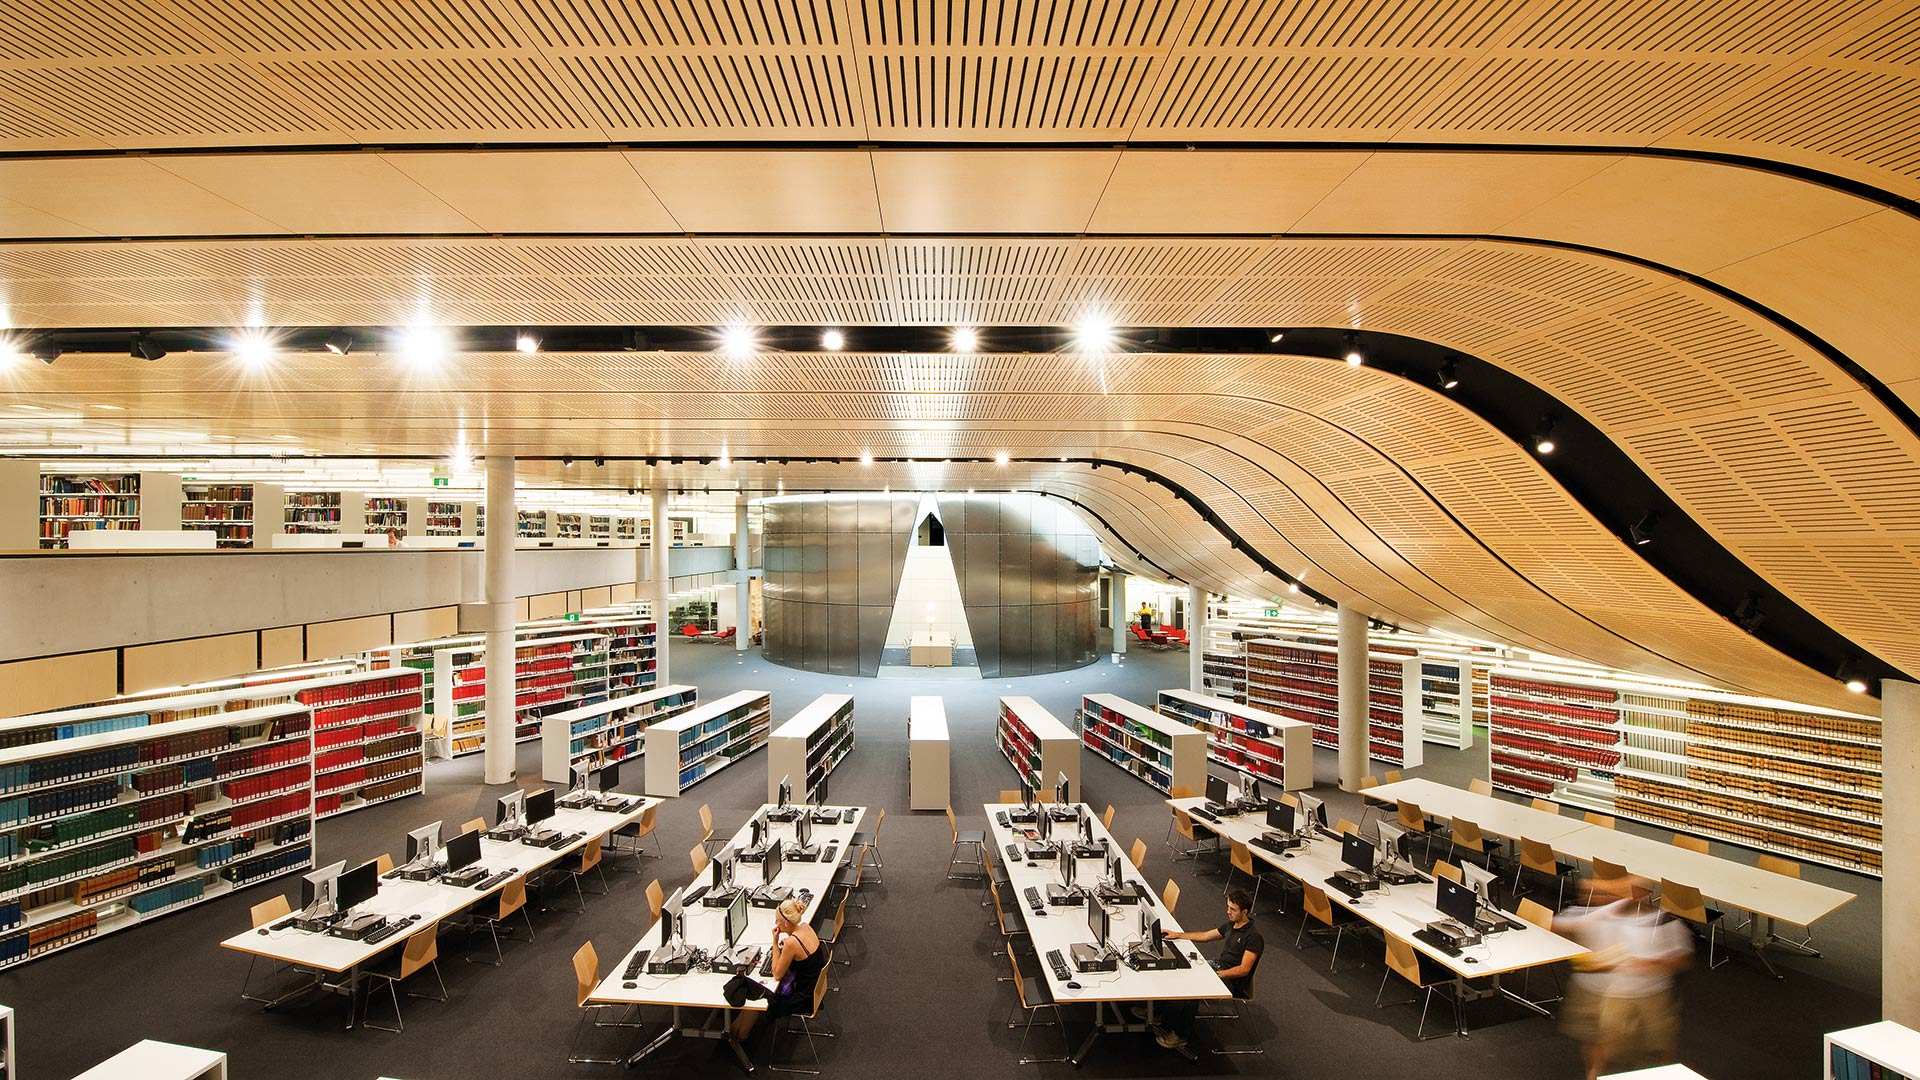 Sydney University Library Law School interior architecture